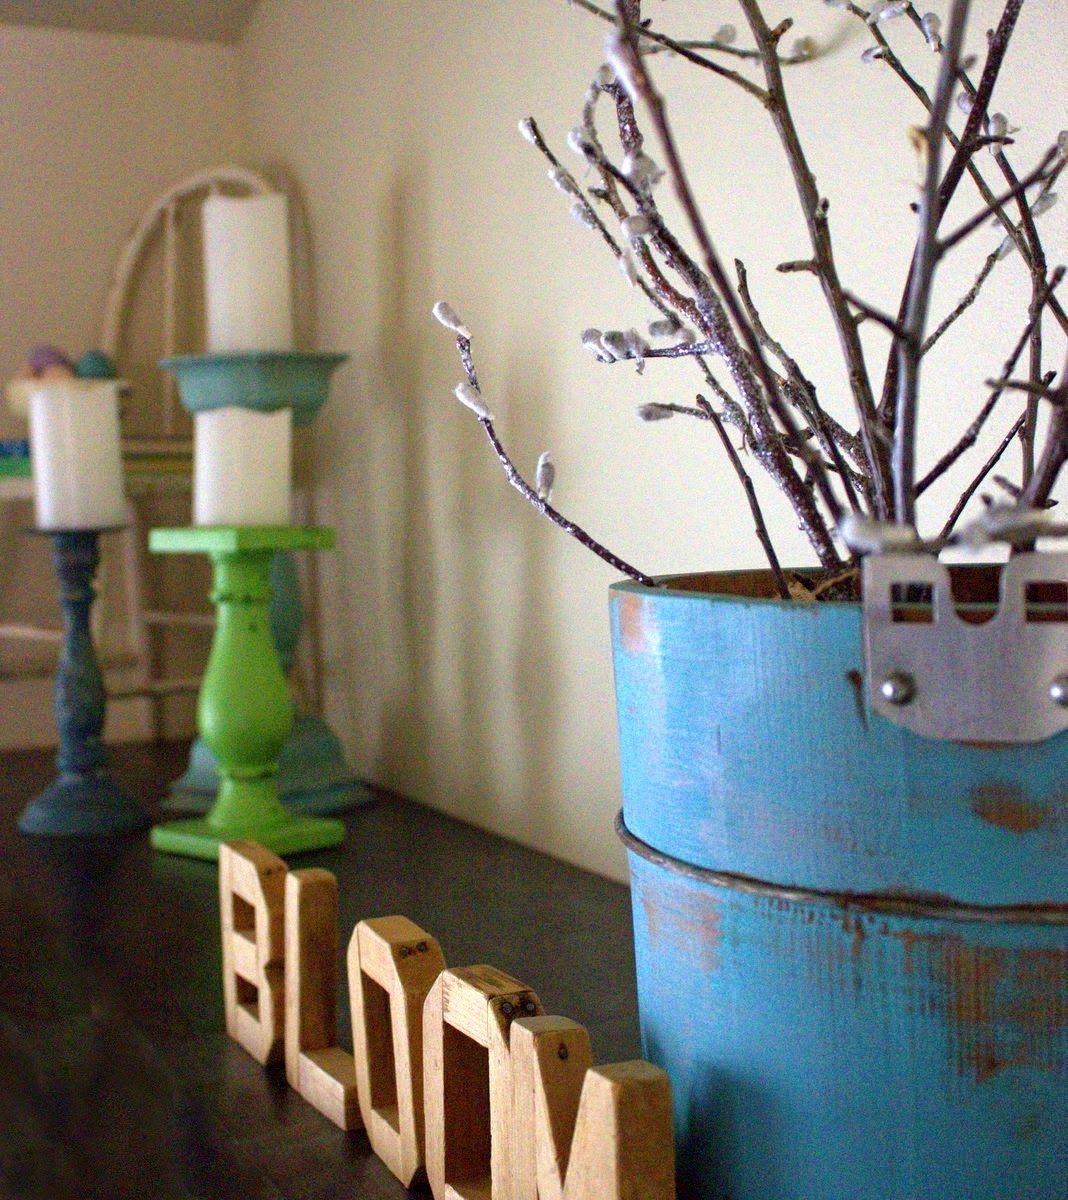 spring decor ideas, best of DIY, beyond the picket fence, paint, bloom, pussy willows, bucket, candlesticks, http://bec4-beyondthepicketfence.blogspot.com/2015/03/bestofdiy-spring-pussy-willows.html